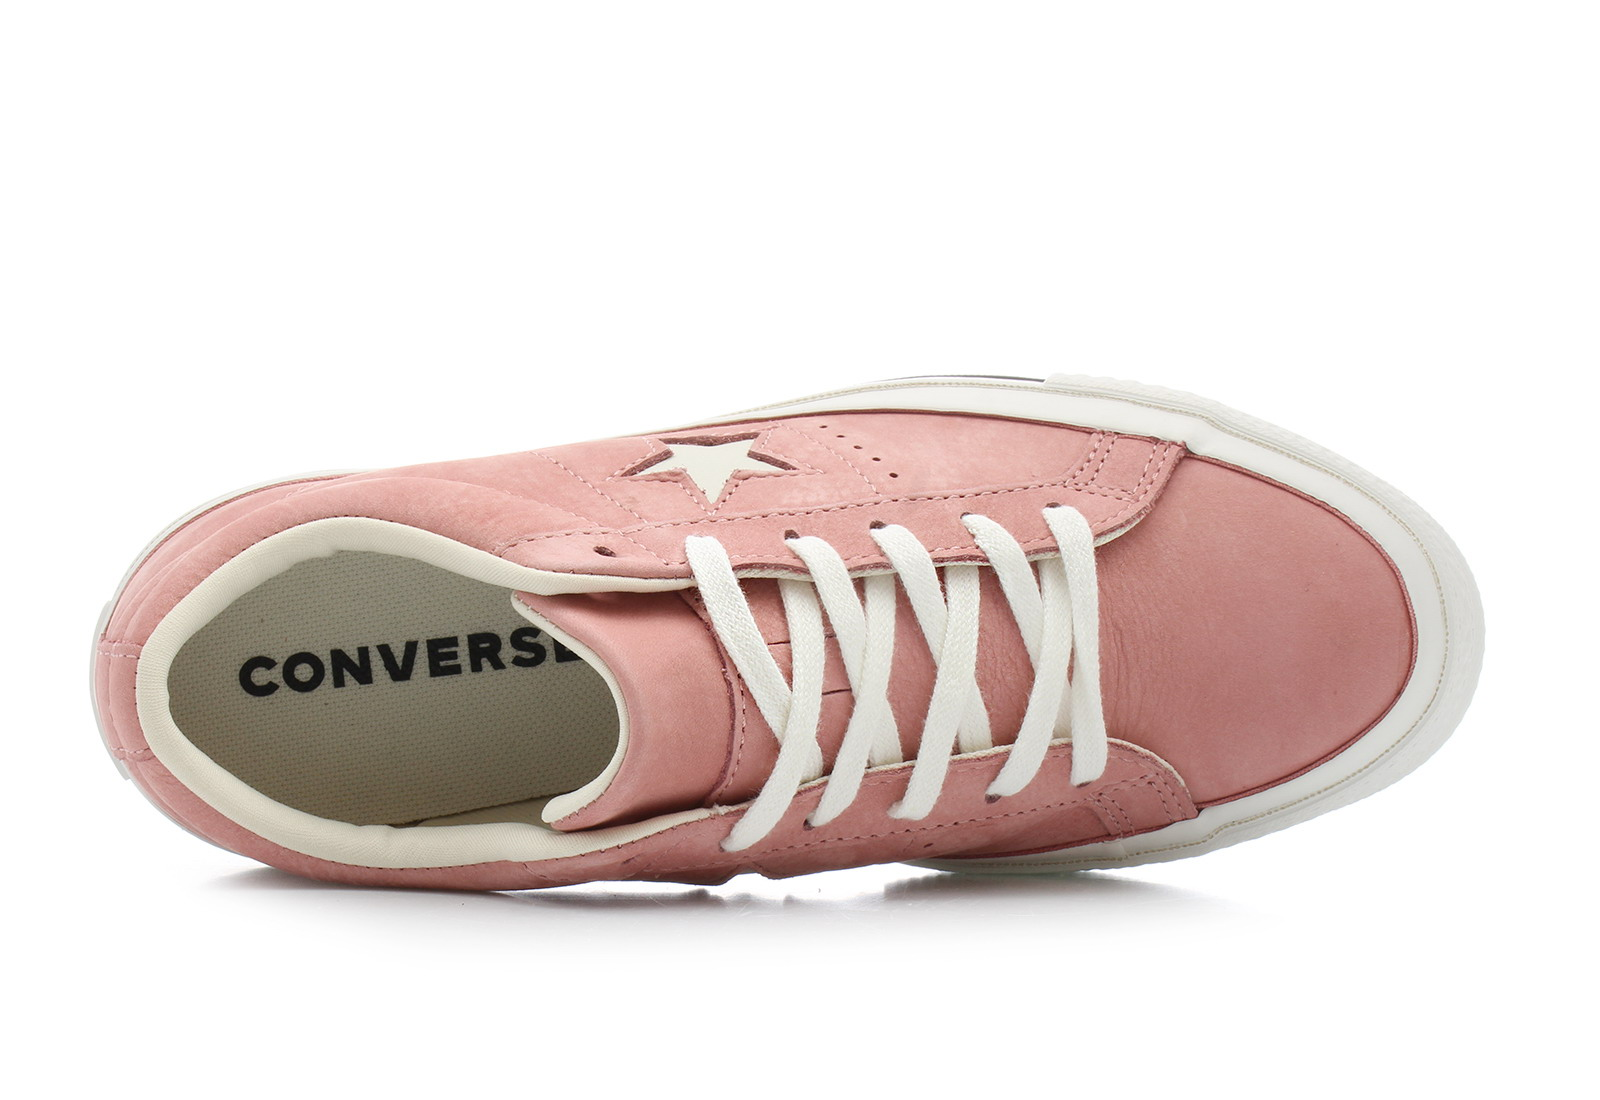 cbd9cb8a0b5 Converse Sneakers - One Star Ox - 161586C - Online shop for sneakers ...